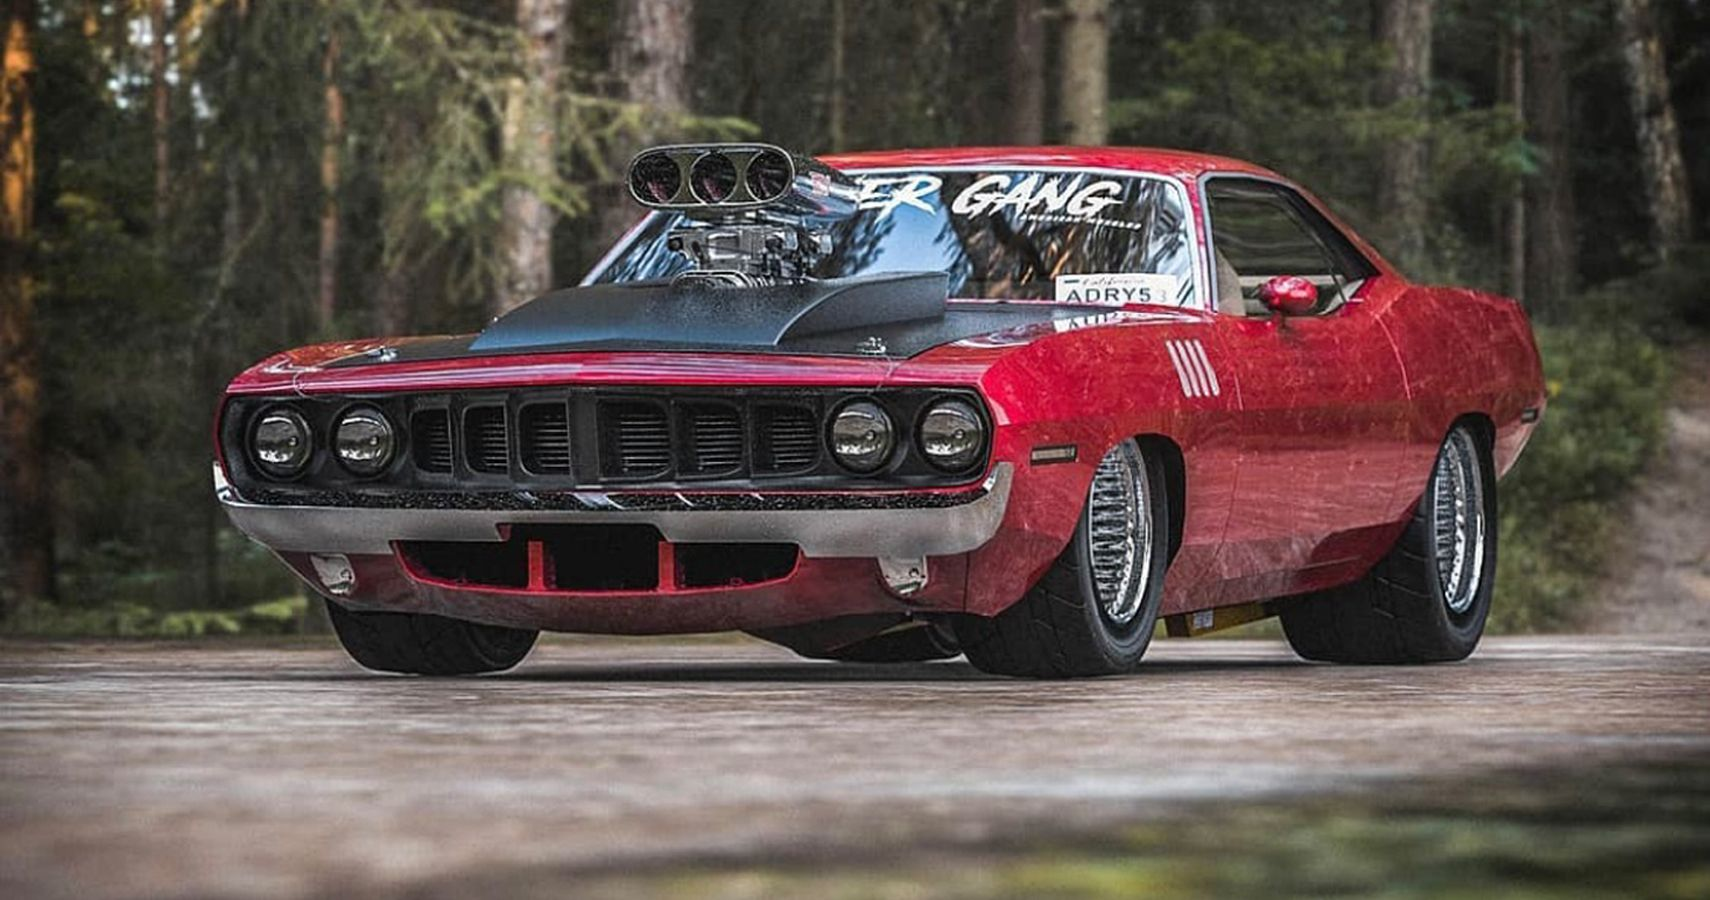 Plymouth Hemi Cuda Gets Big Honking Root Blower, Because Nothing Is Sacred